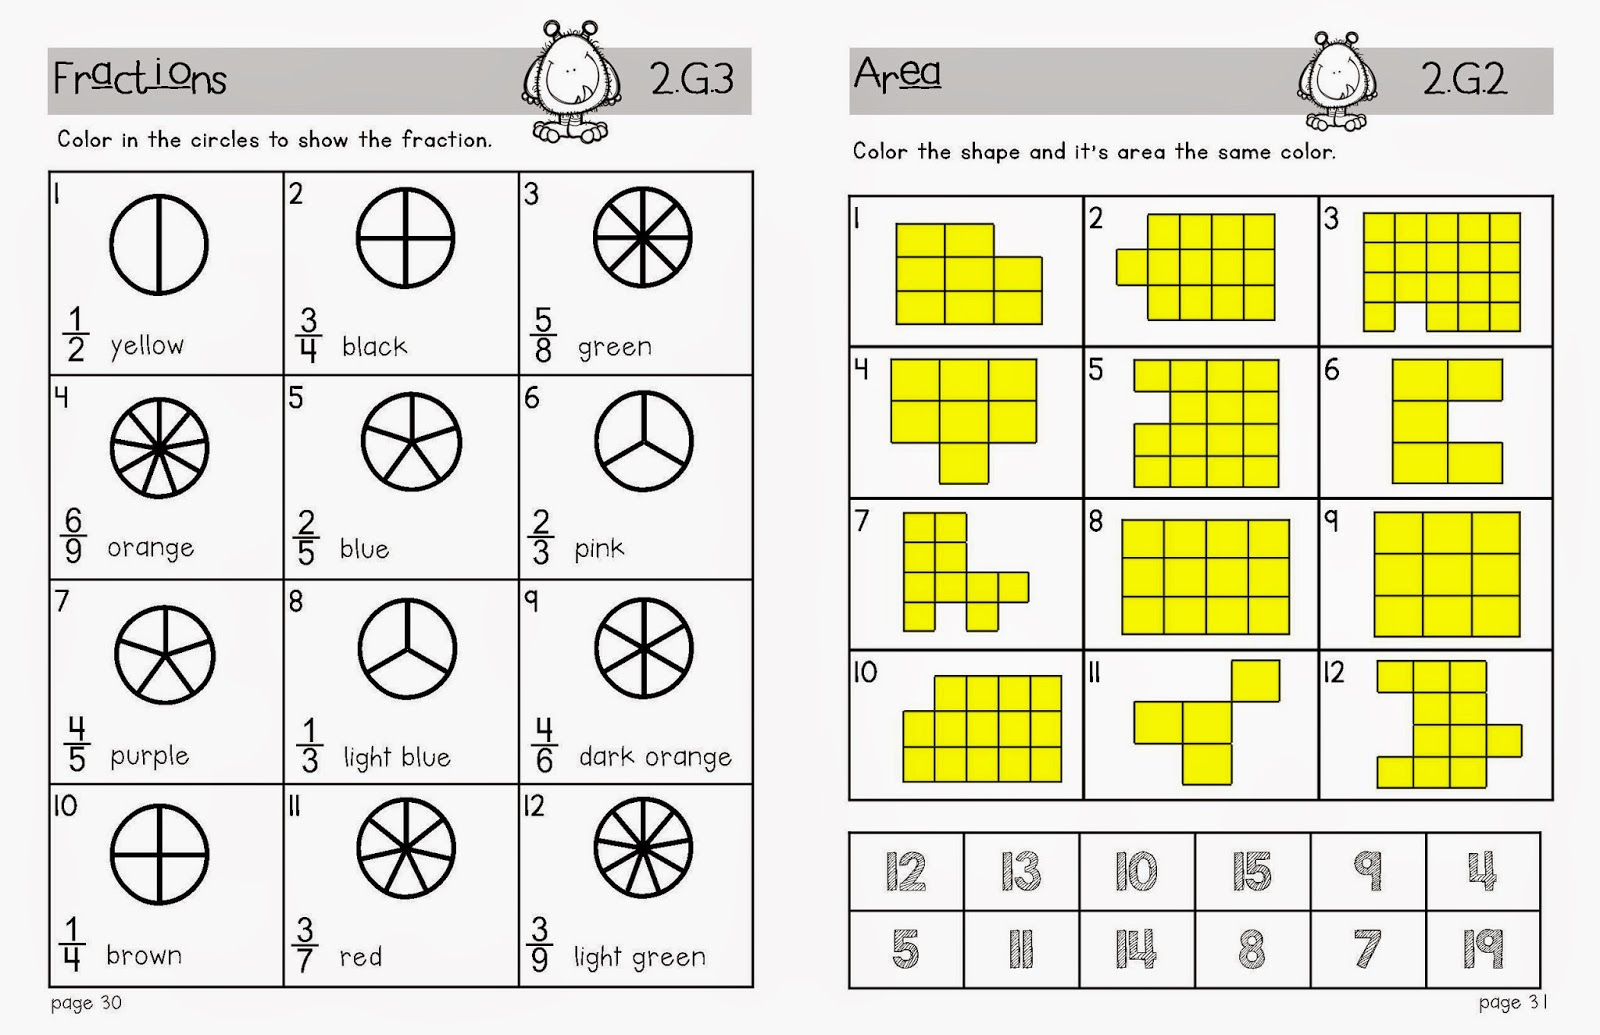 Lory S 2nd Grade Skills End Of Level Test Amp Math Review